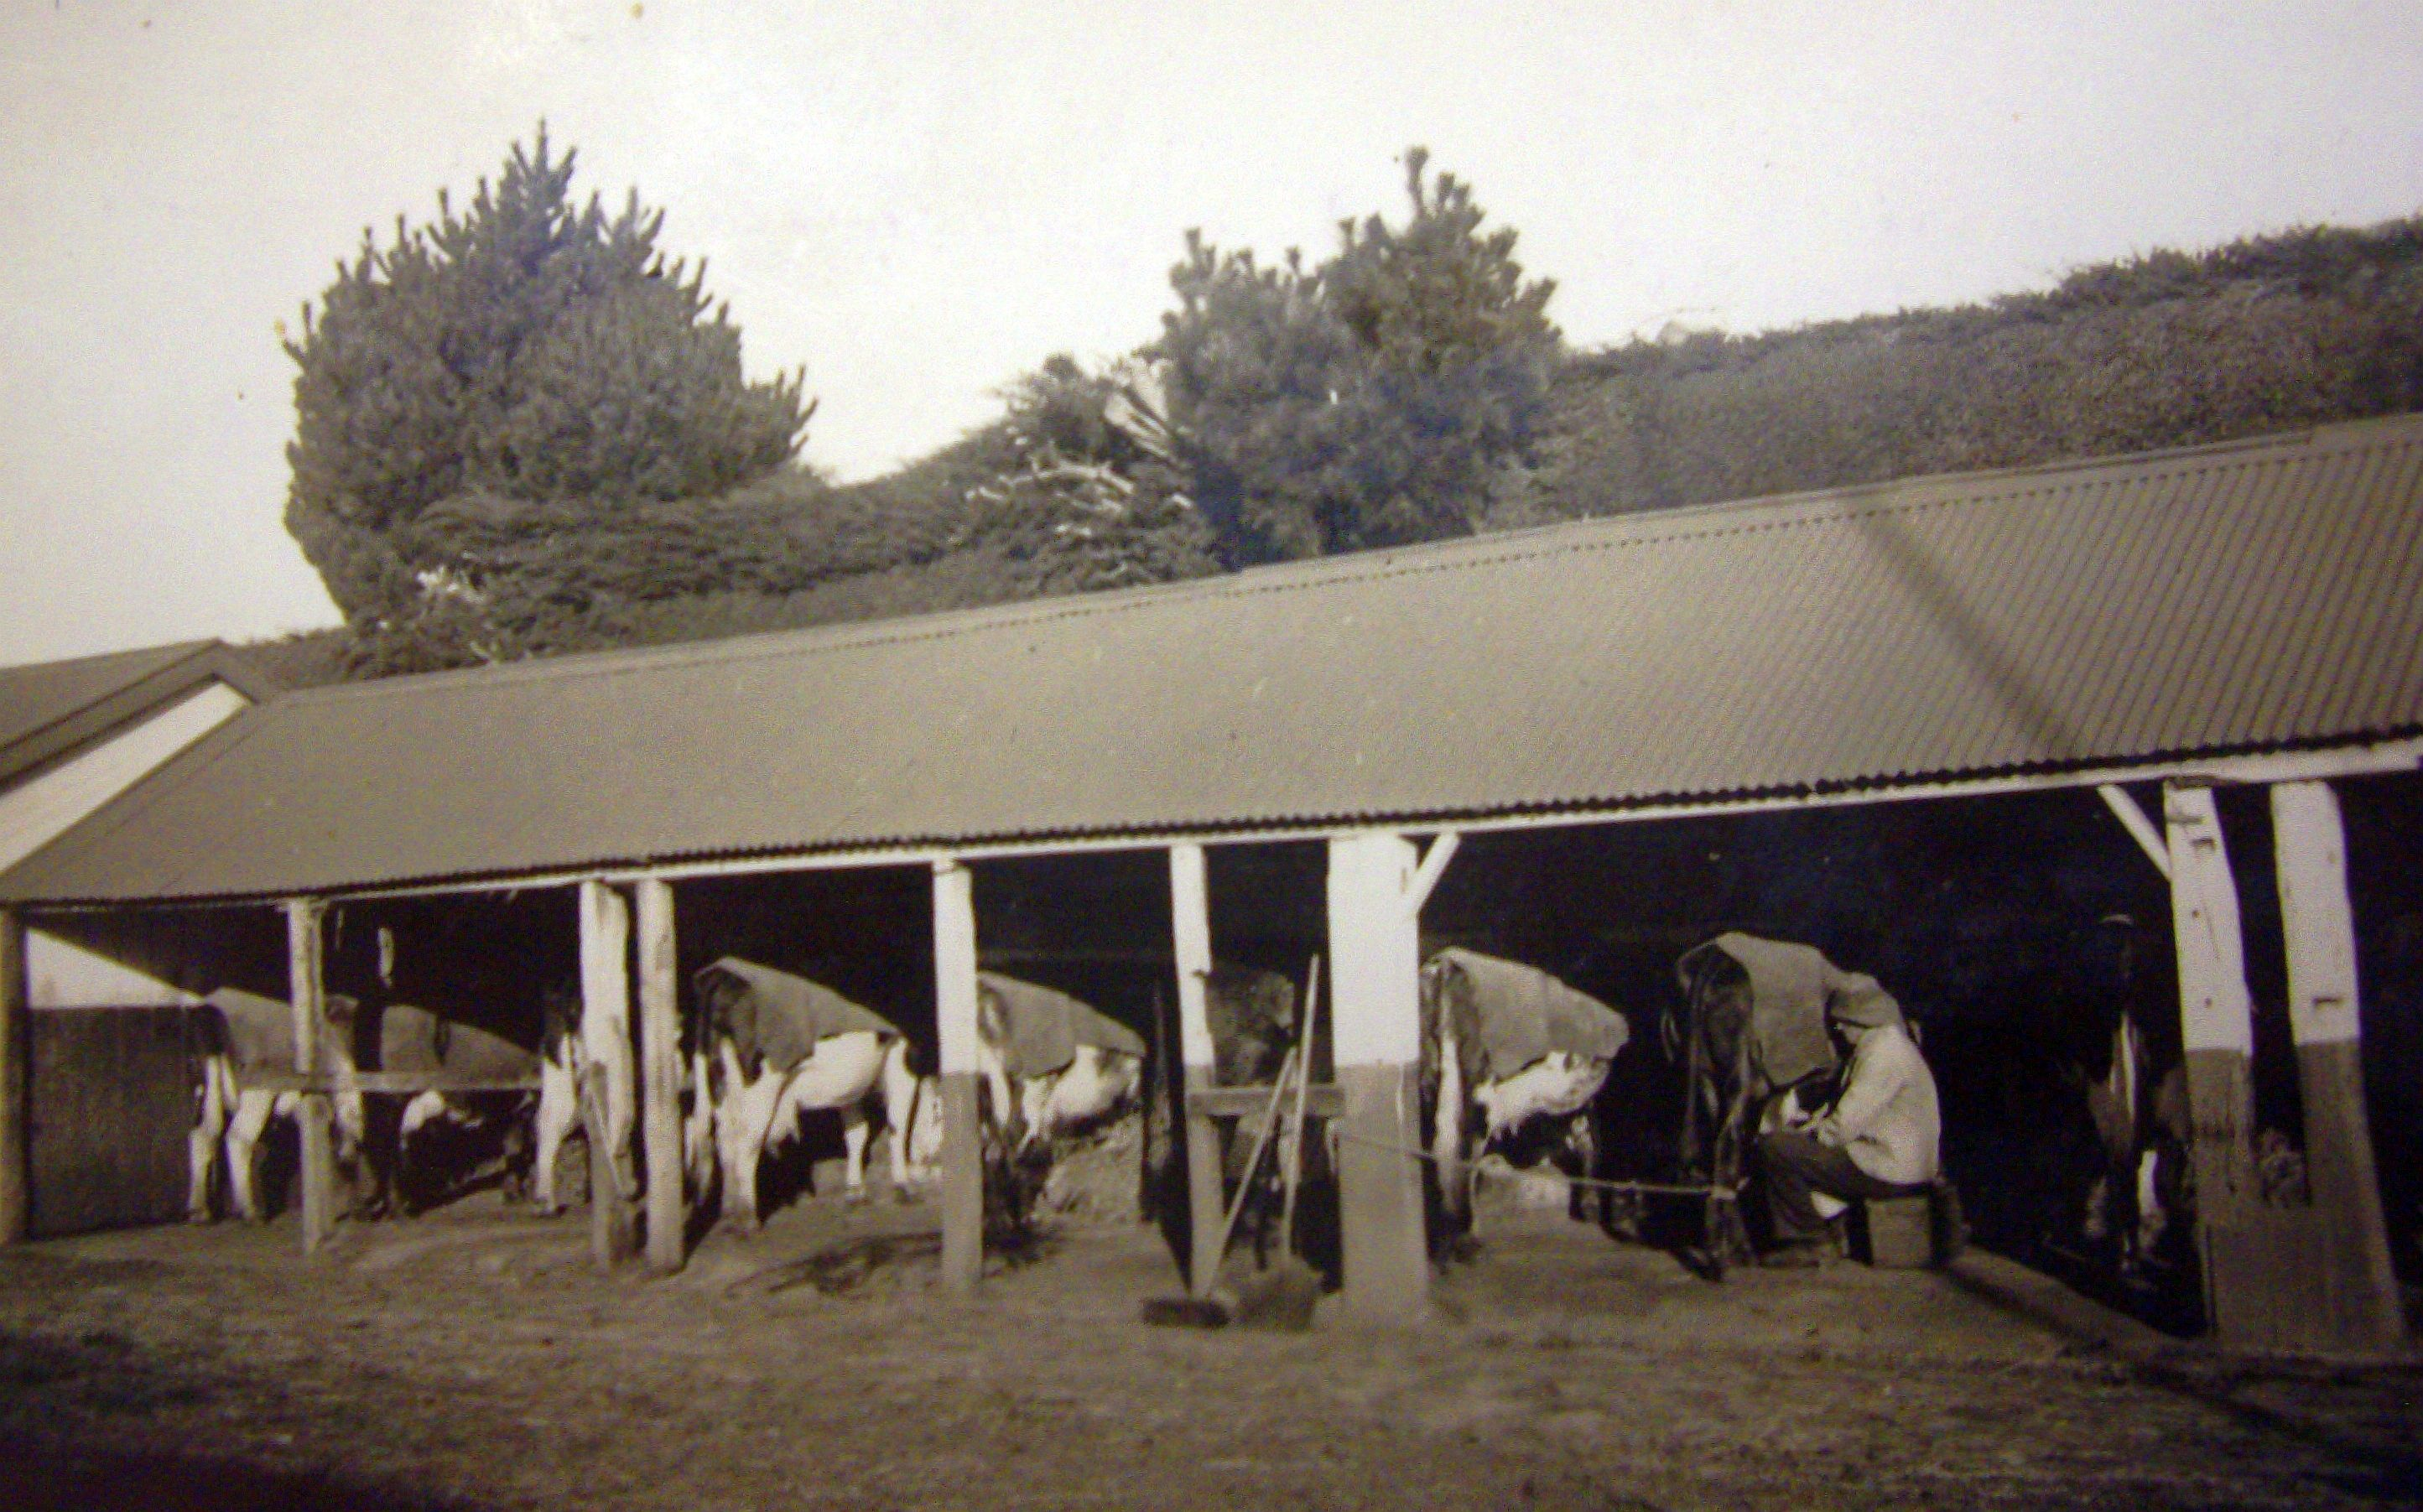 View of an open  cowshed with someone milking a cow.